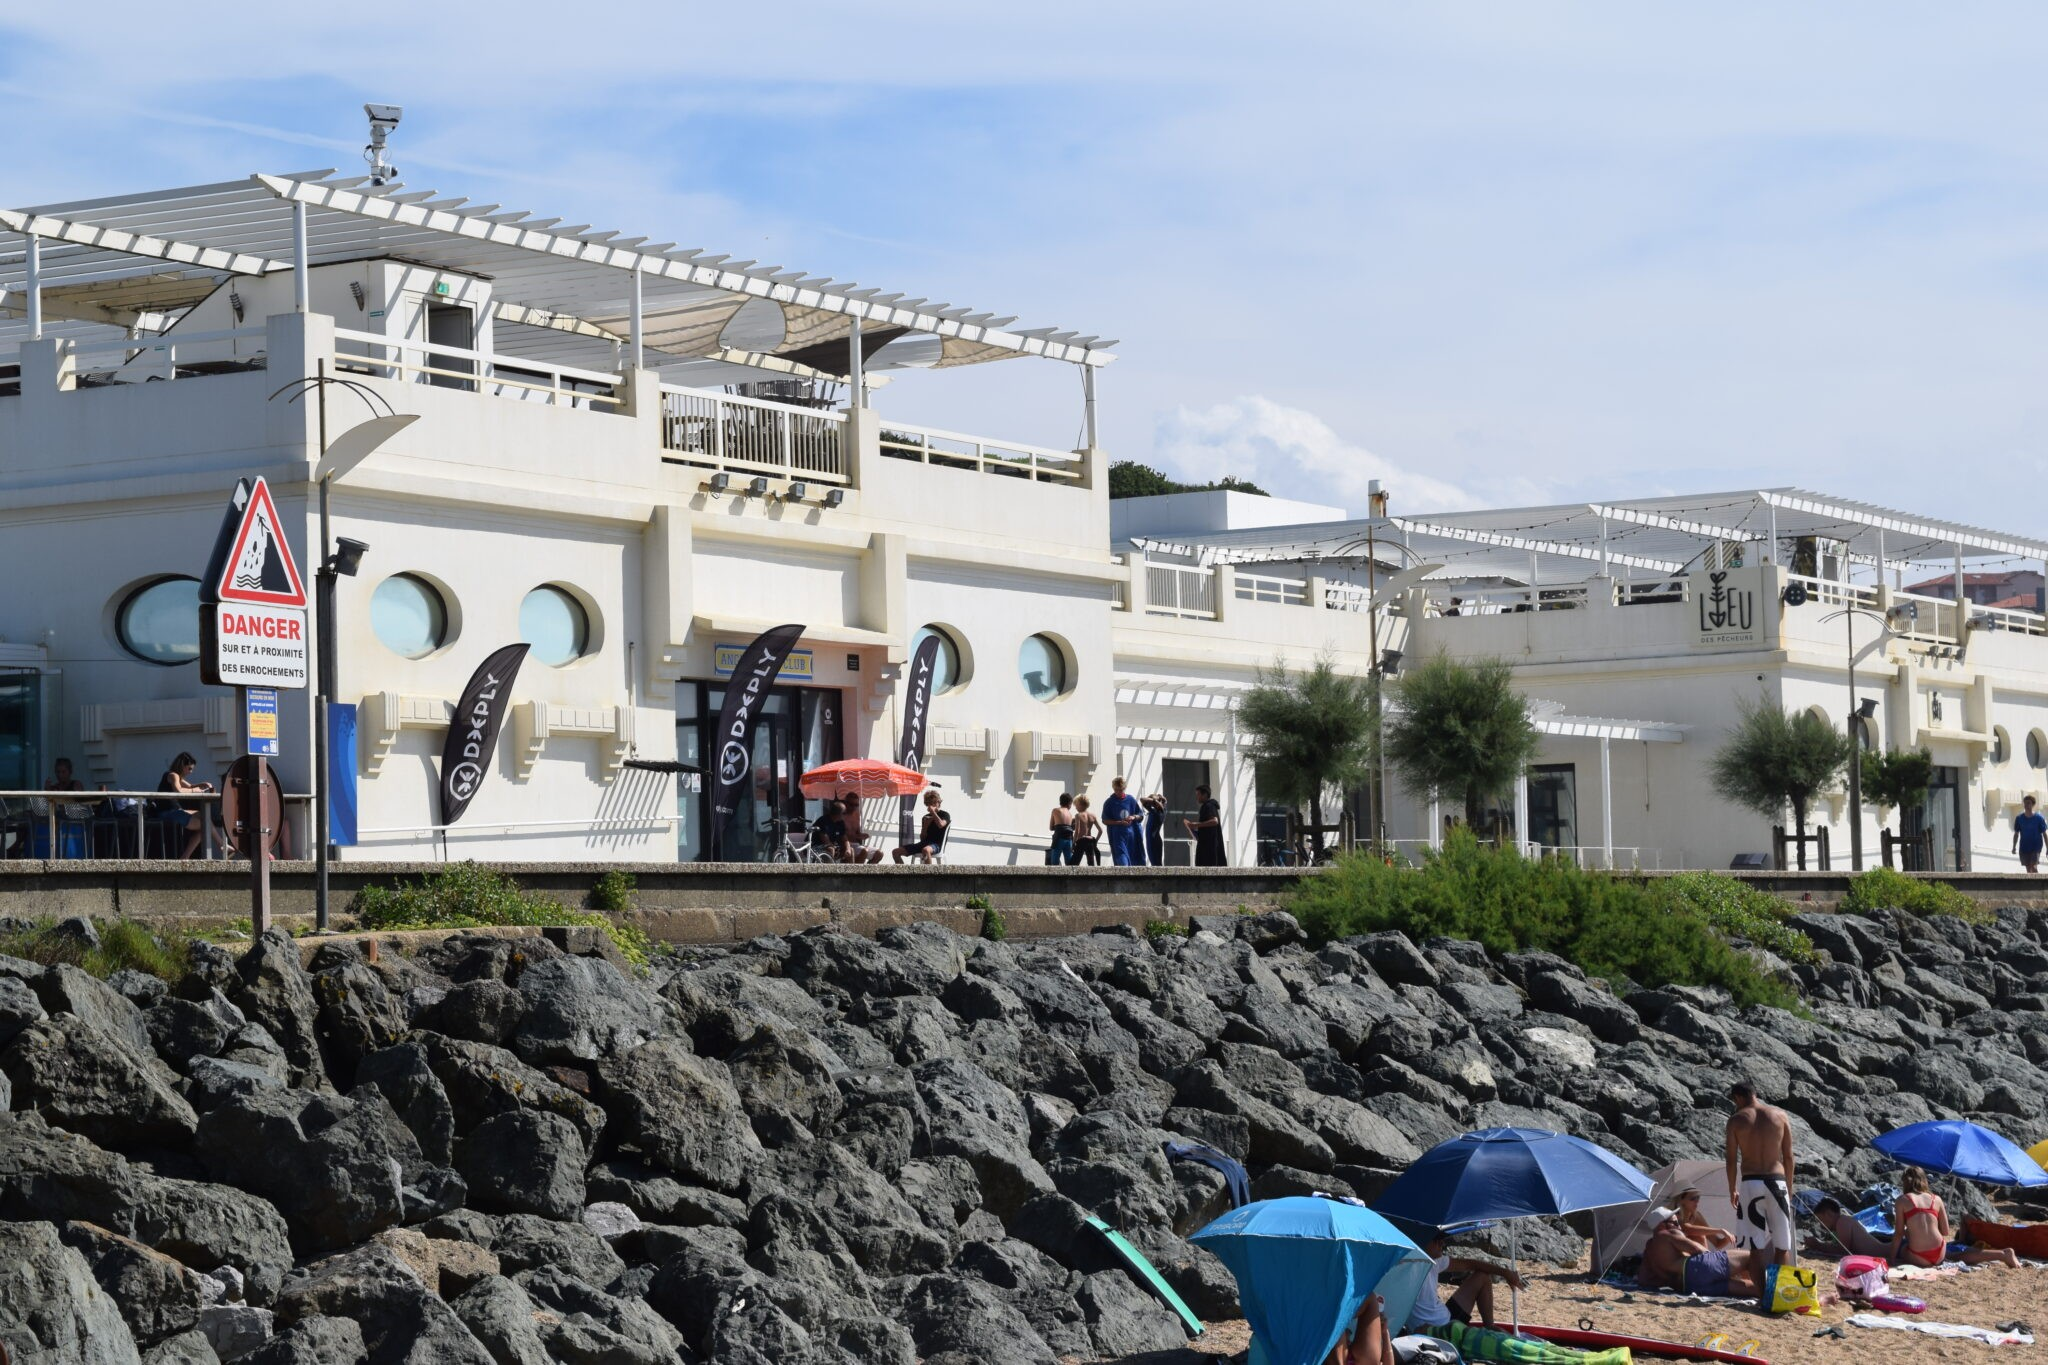 Anglet Surf Club Chambre d'Amour